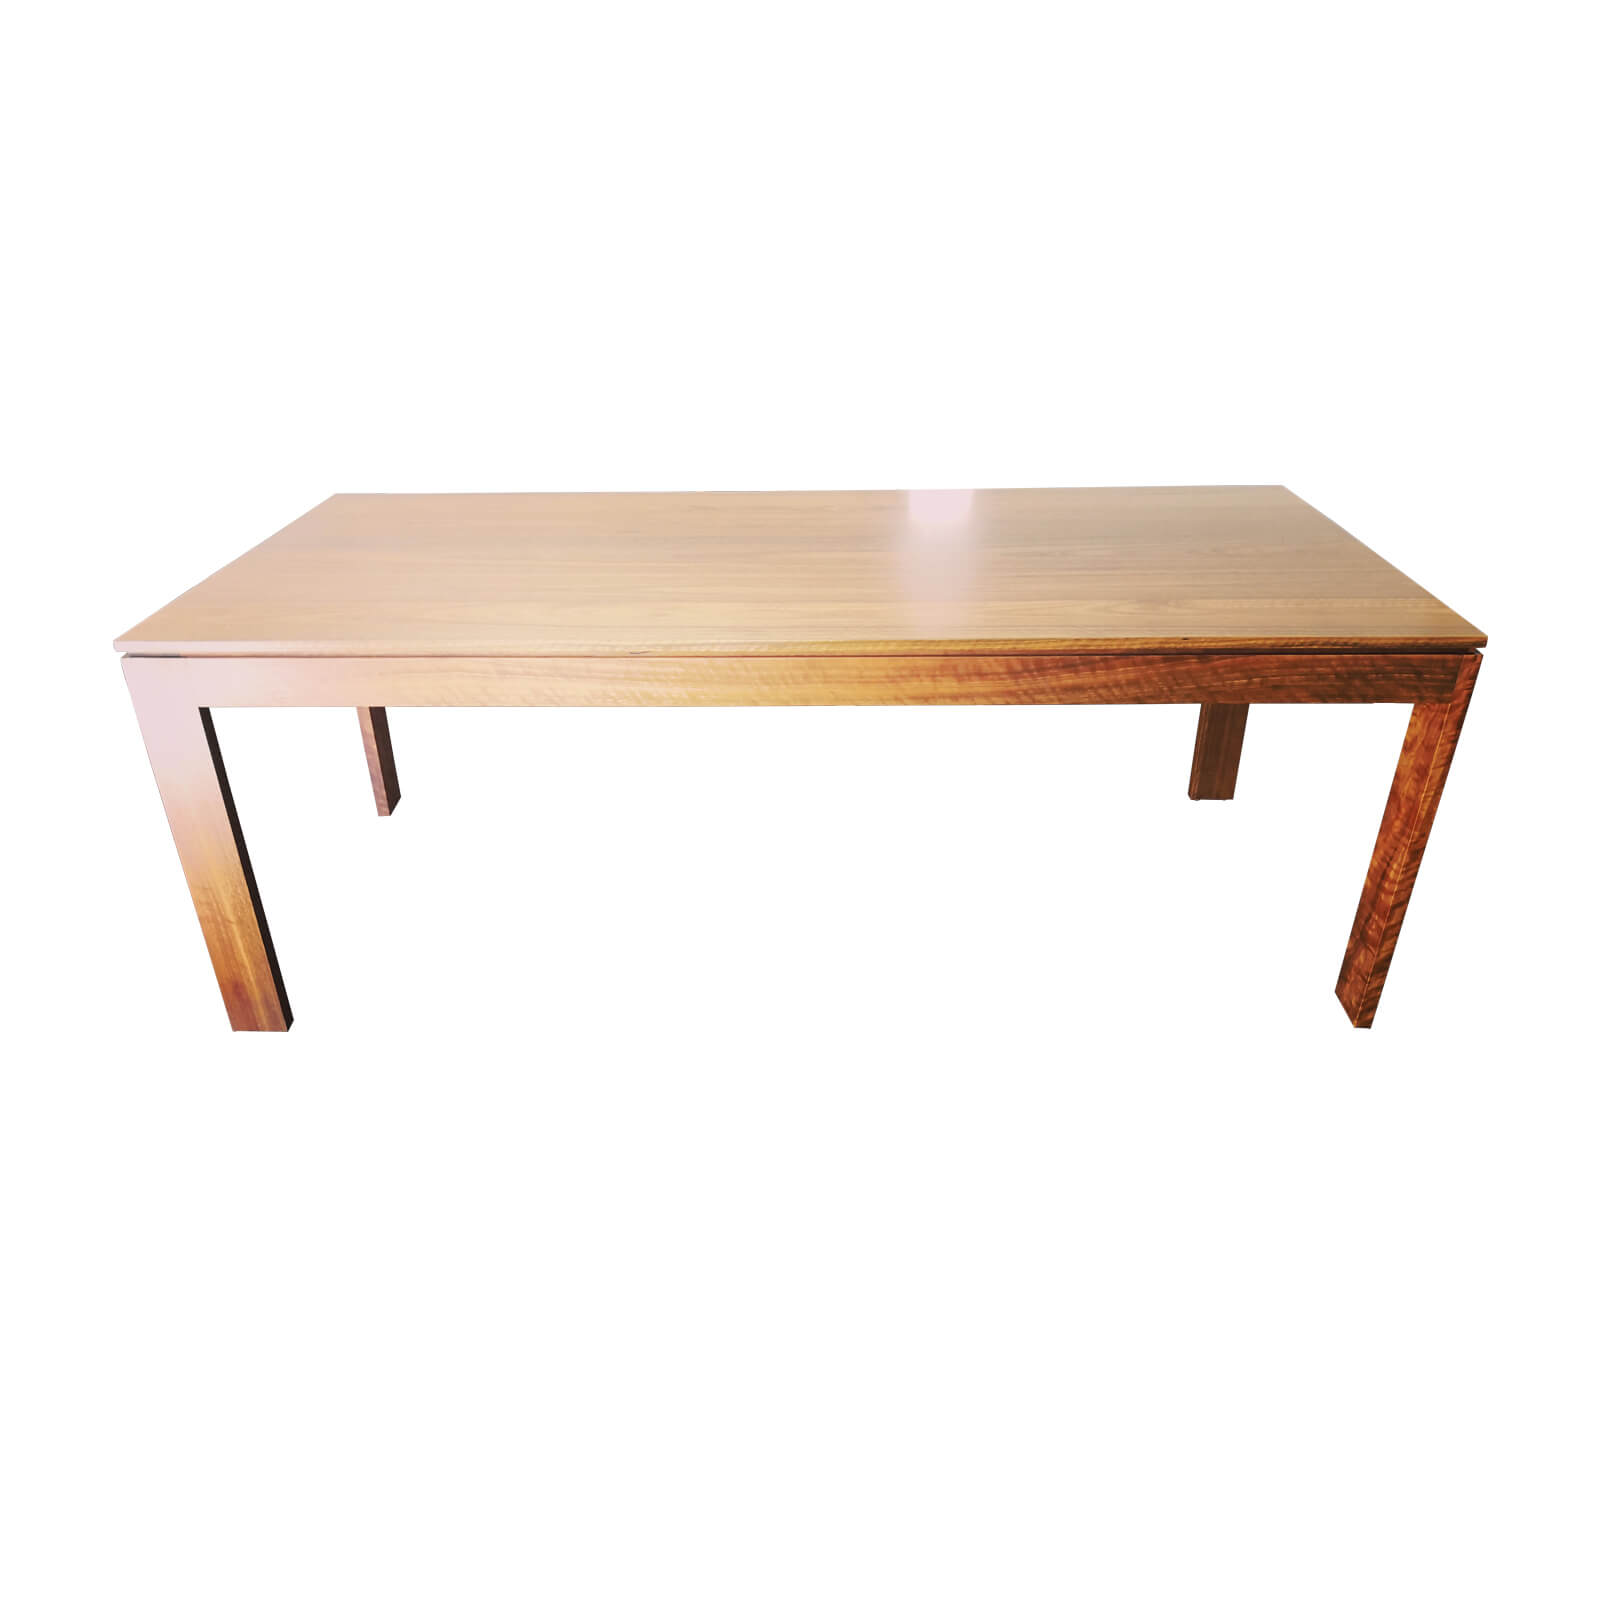 Planet Furniture Dining Table in Spotted Gun